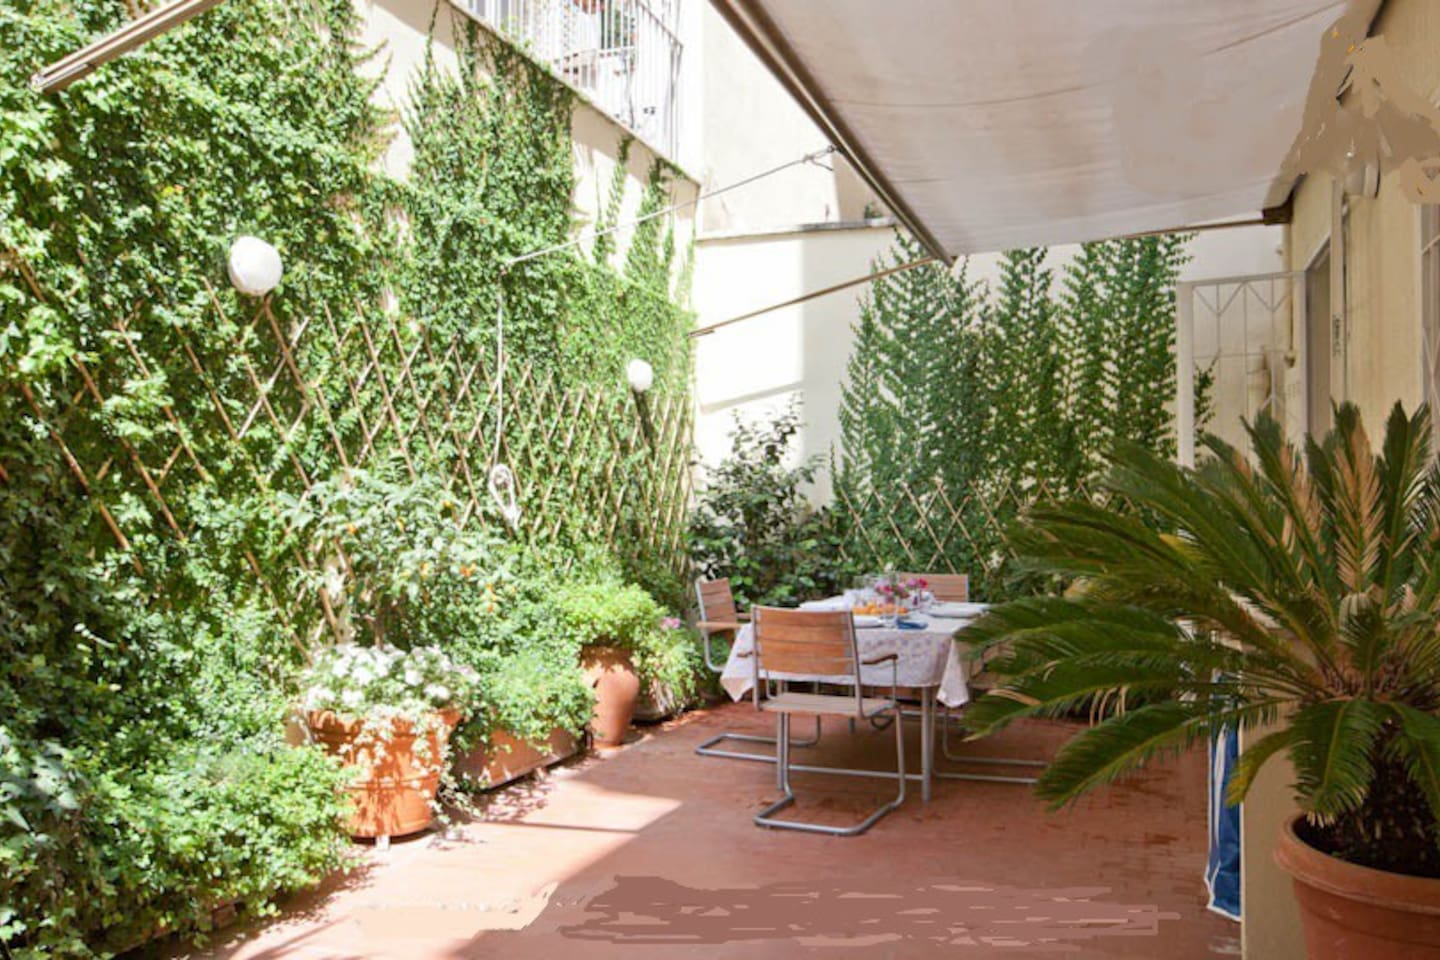 50 sqm terrace with table plants and sun bed with comfortable washing machine